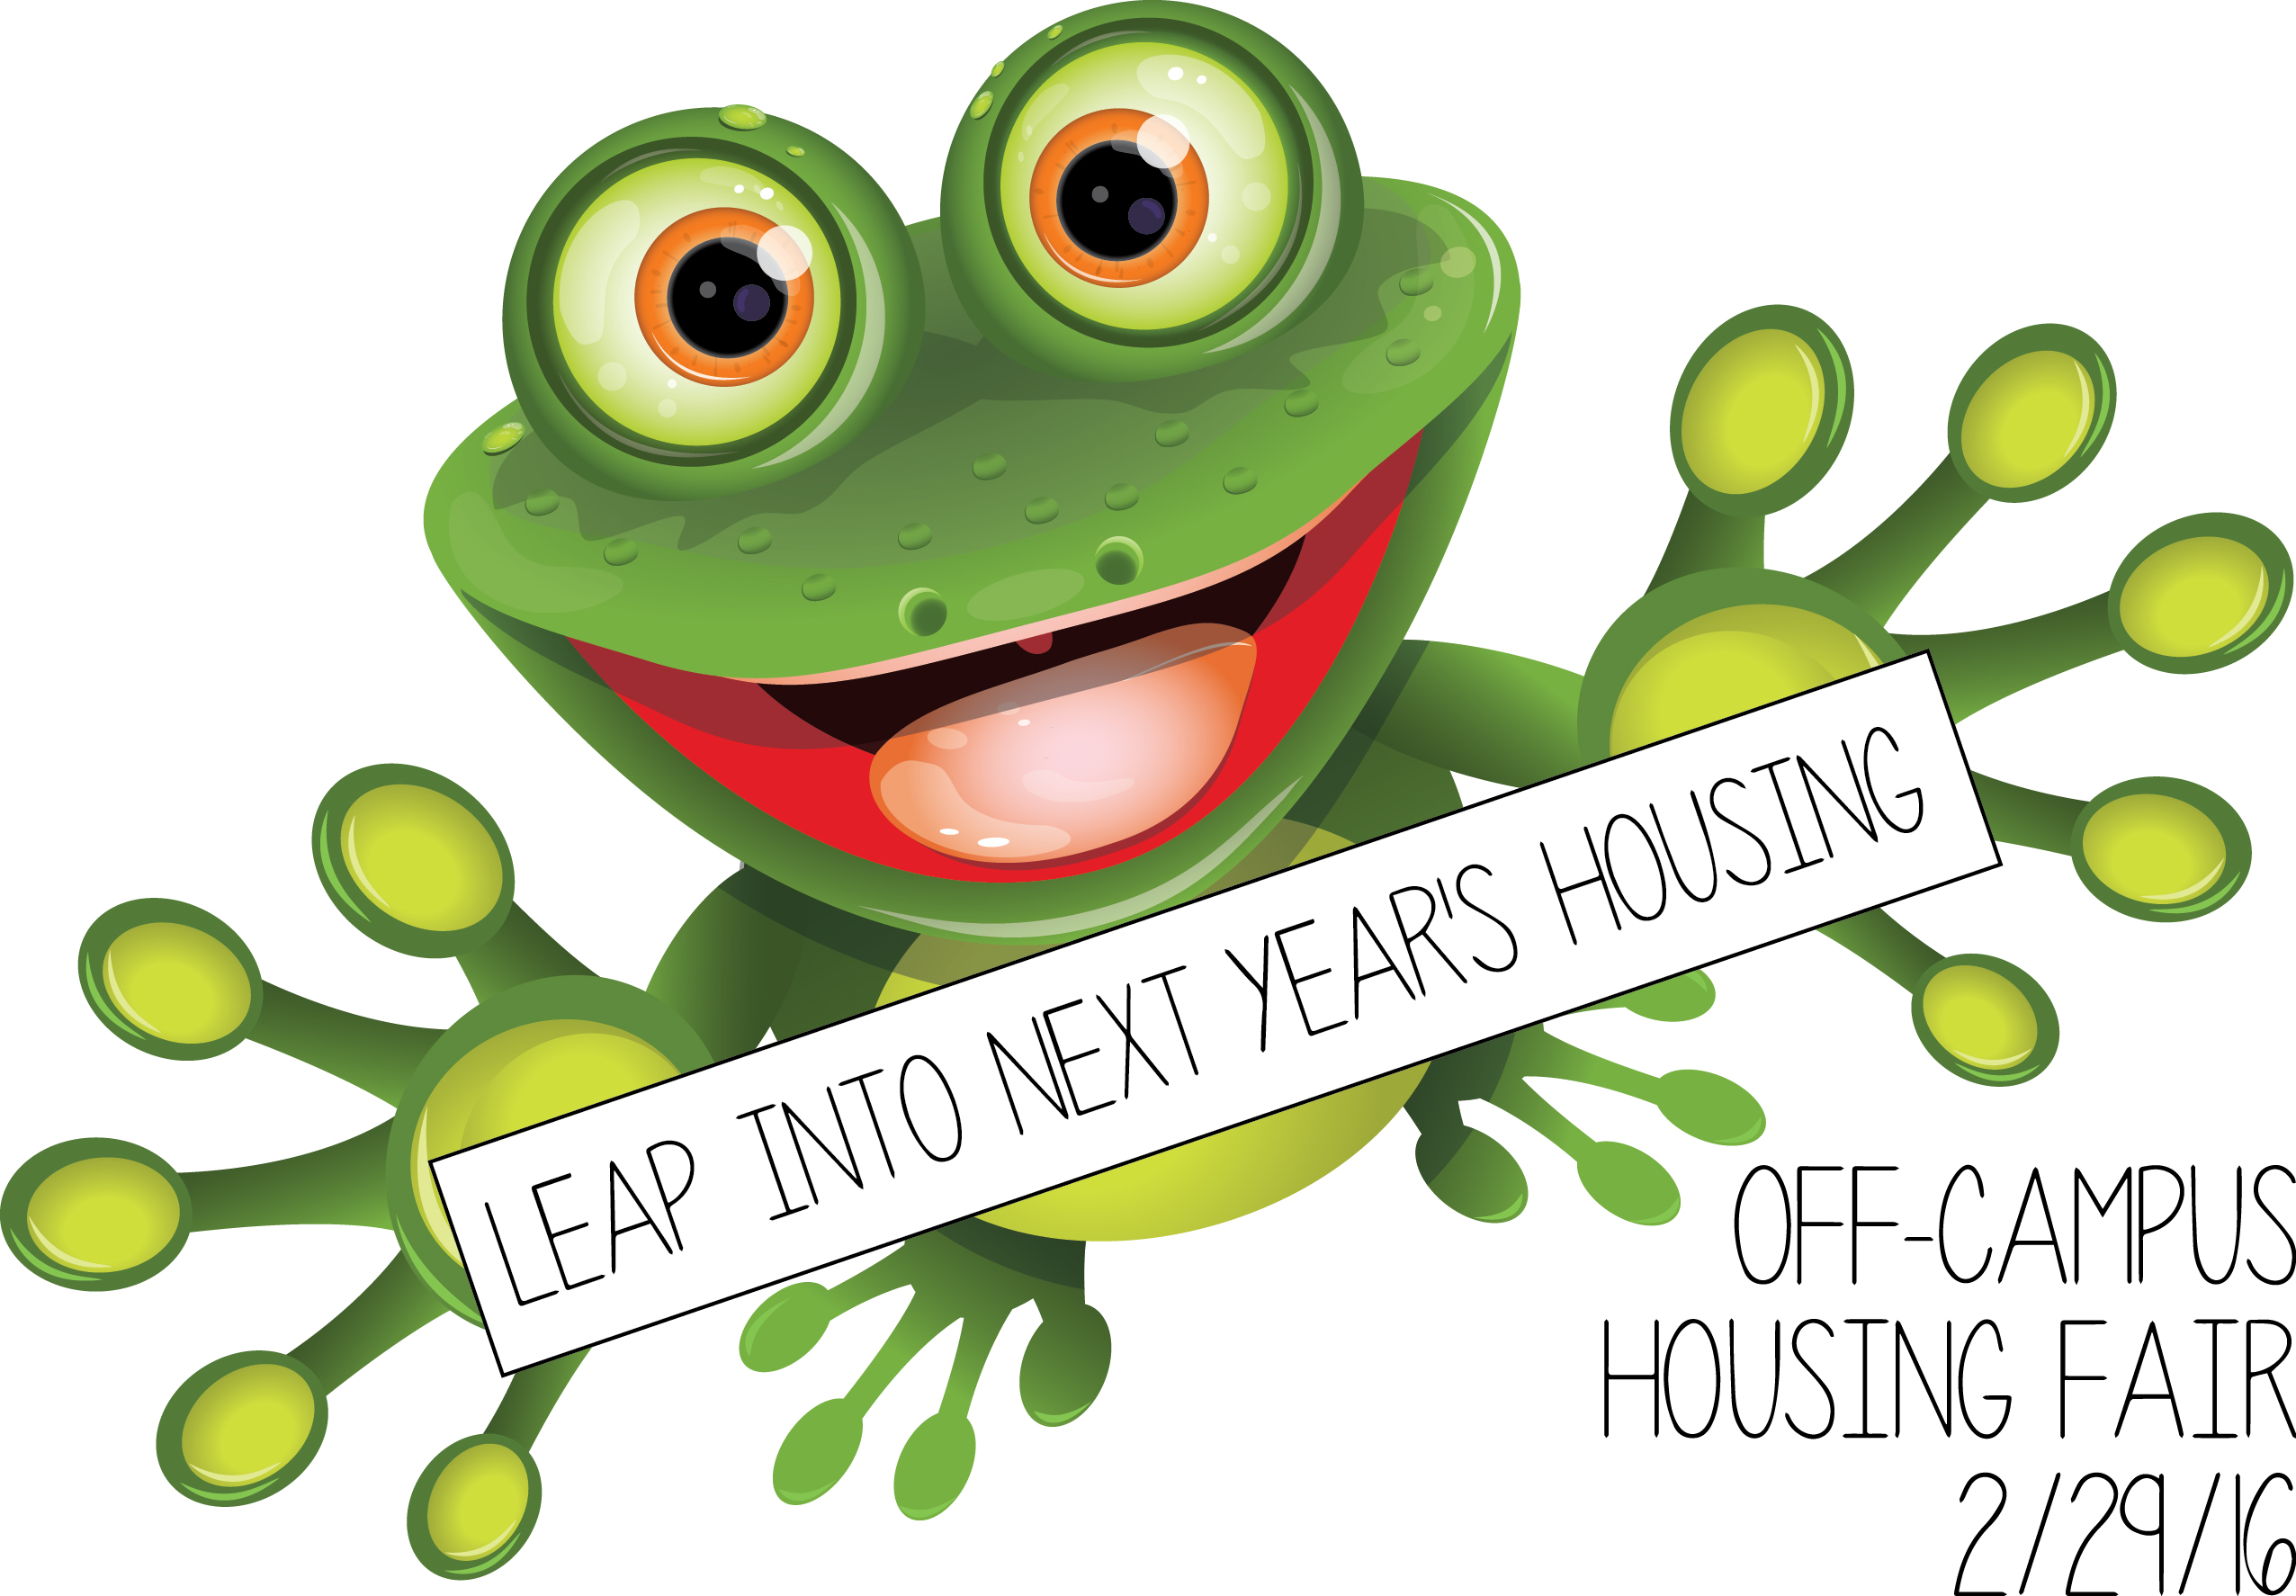 2016 Off-Campus Housing Fair Save the Date 2/29/16